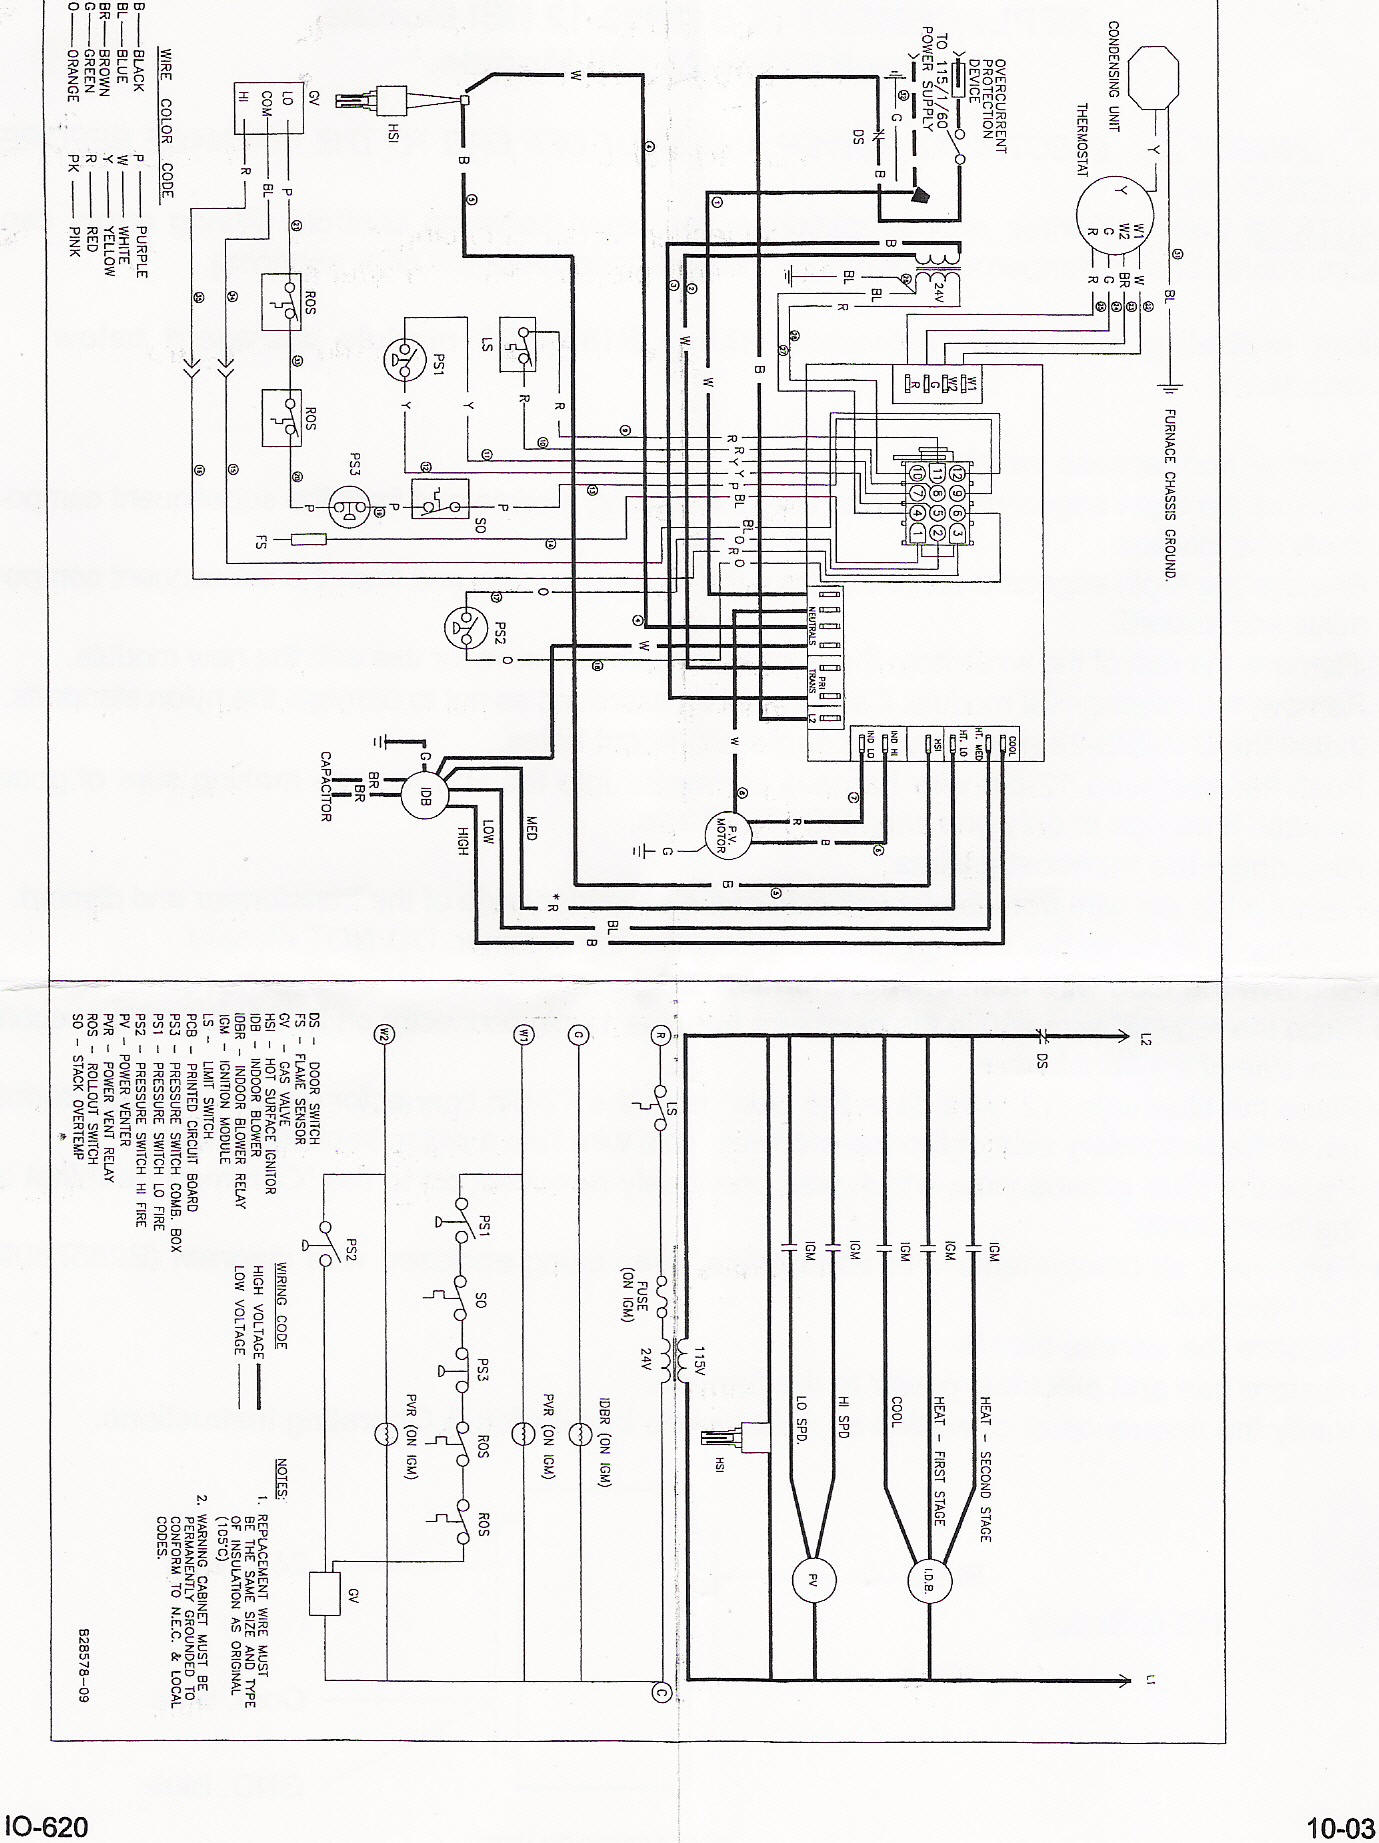 goodma2 instr goodman control board b18099 23 instructions tempstar furnace wiring diagram at crackthecode.co